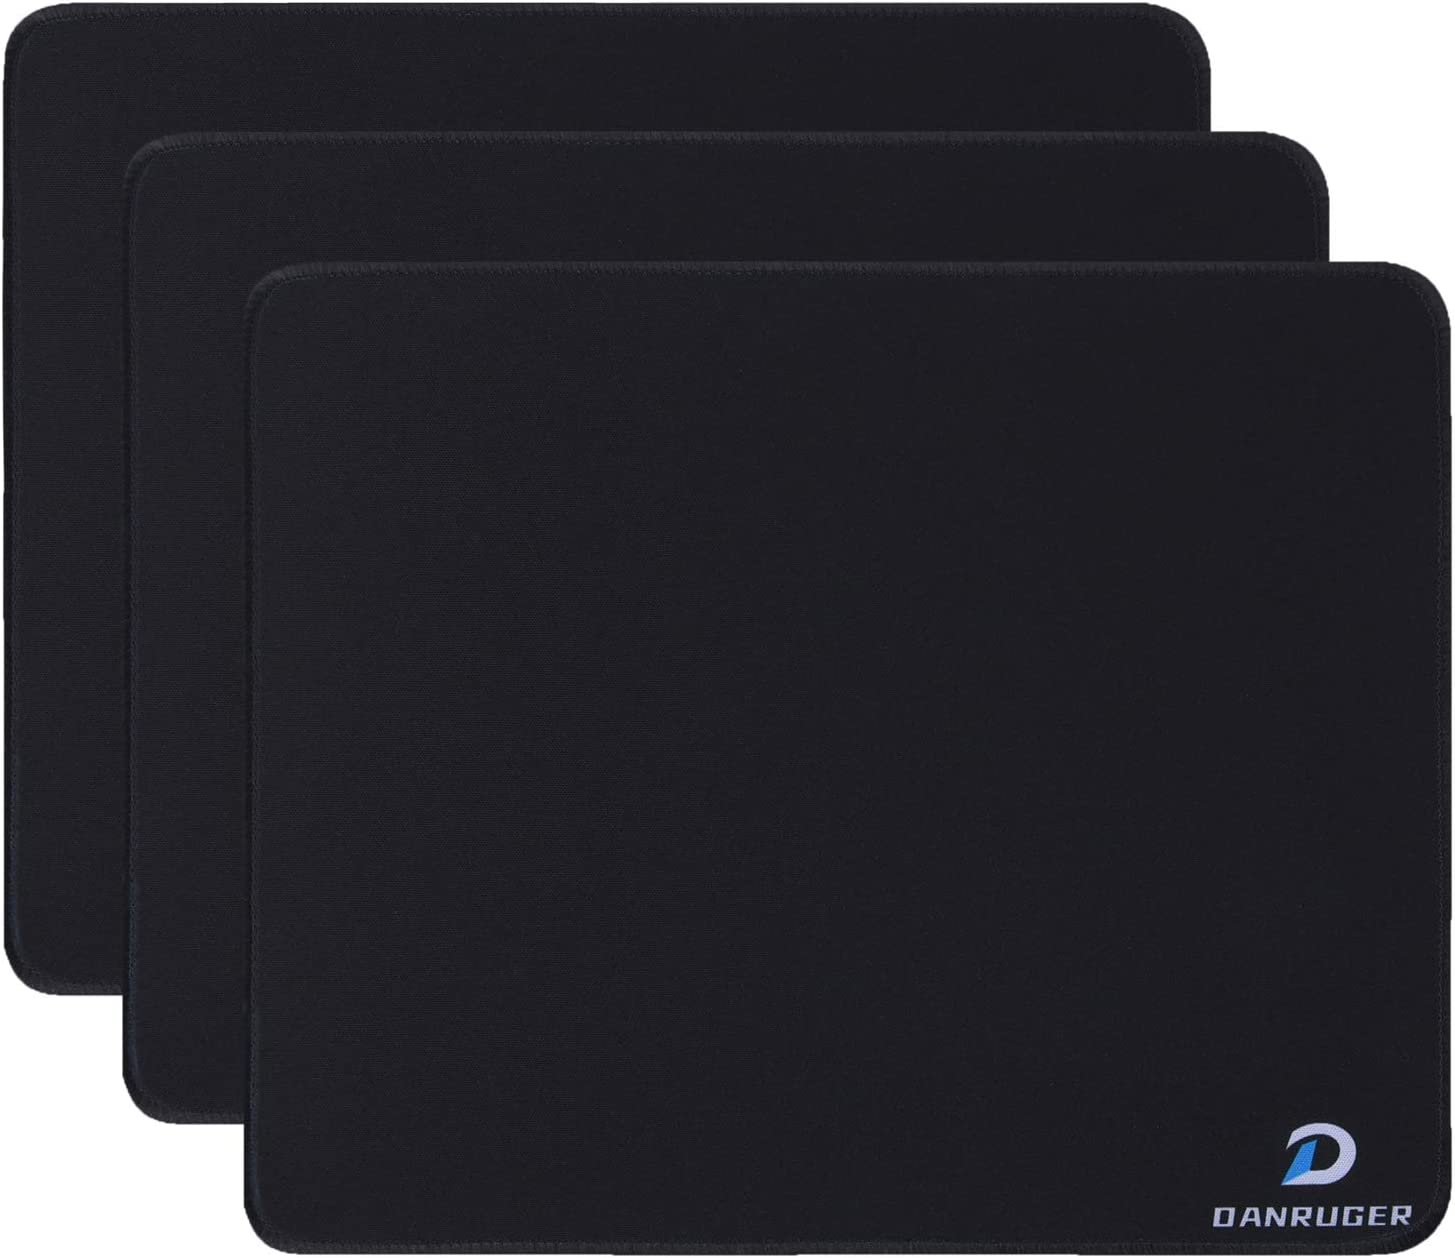 Mouse pad with Stitched Edge,Smooth Surface,Non-Slip Rubber Base,Mouse Mat for Computer,Laptop & PC,Mousepad for Office & Home,10.0×8.2×0.08 inches,3Pack (Black-3)